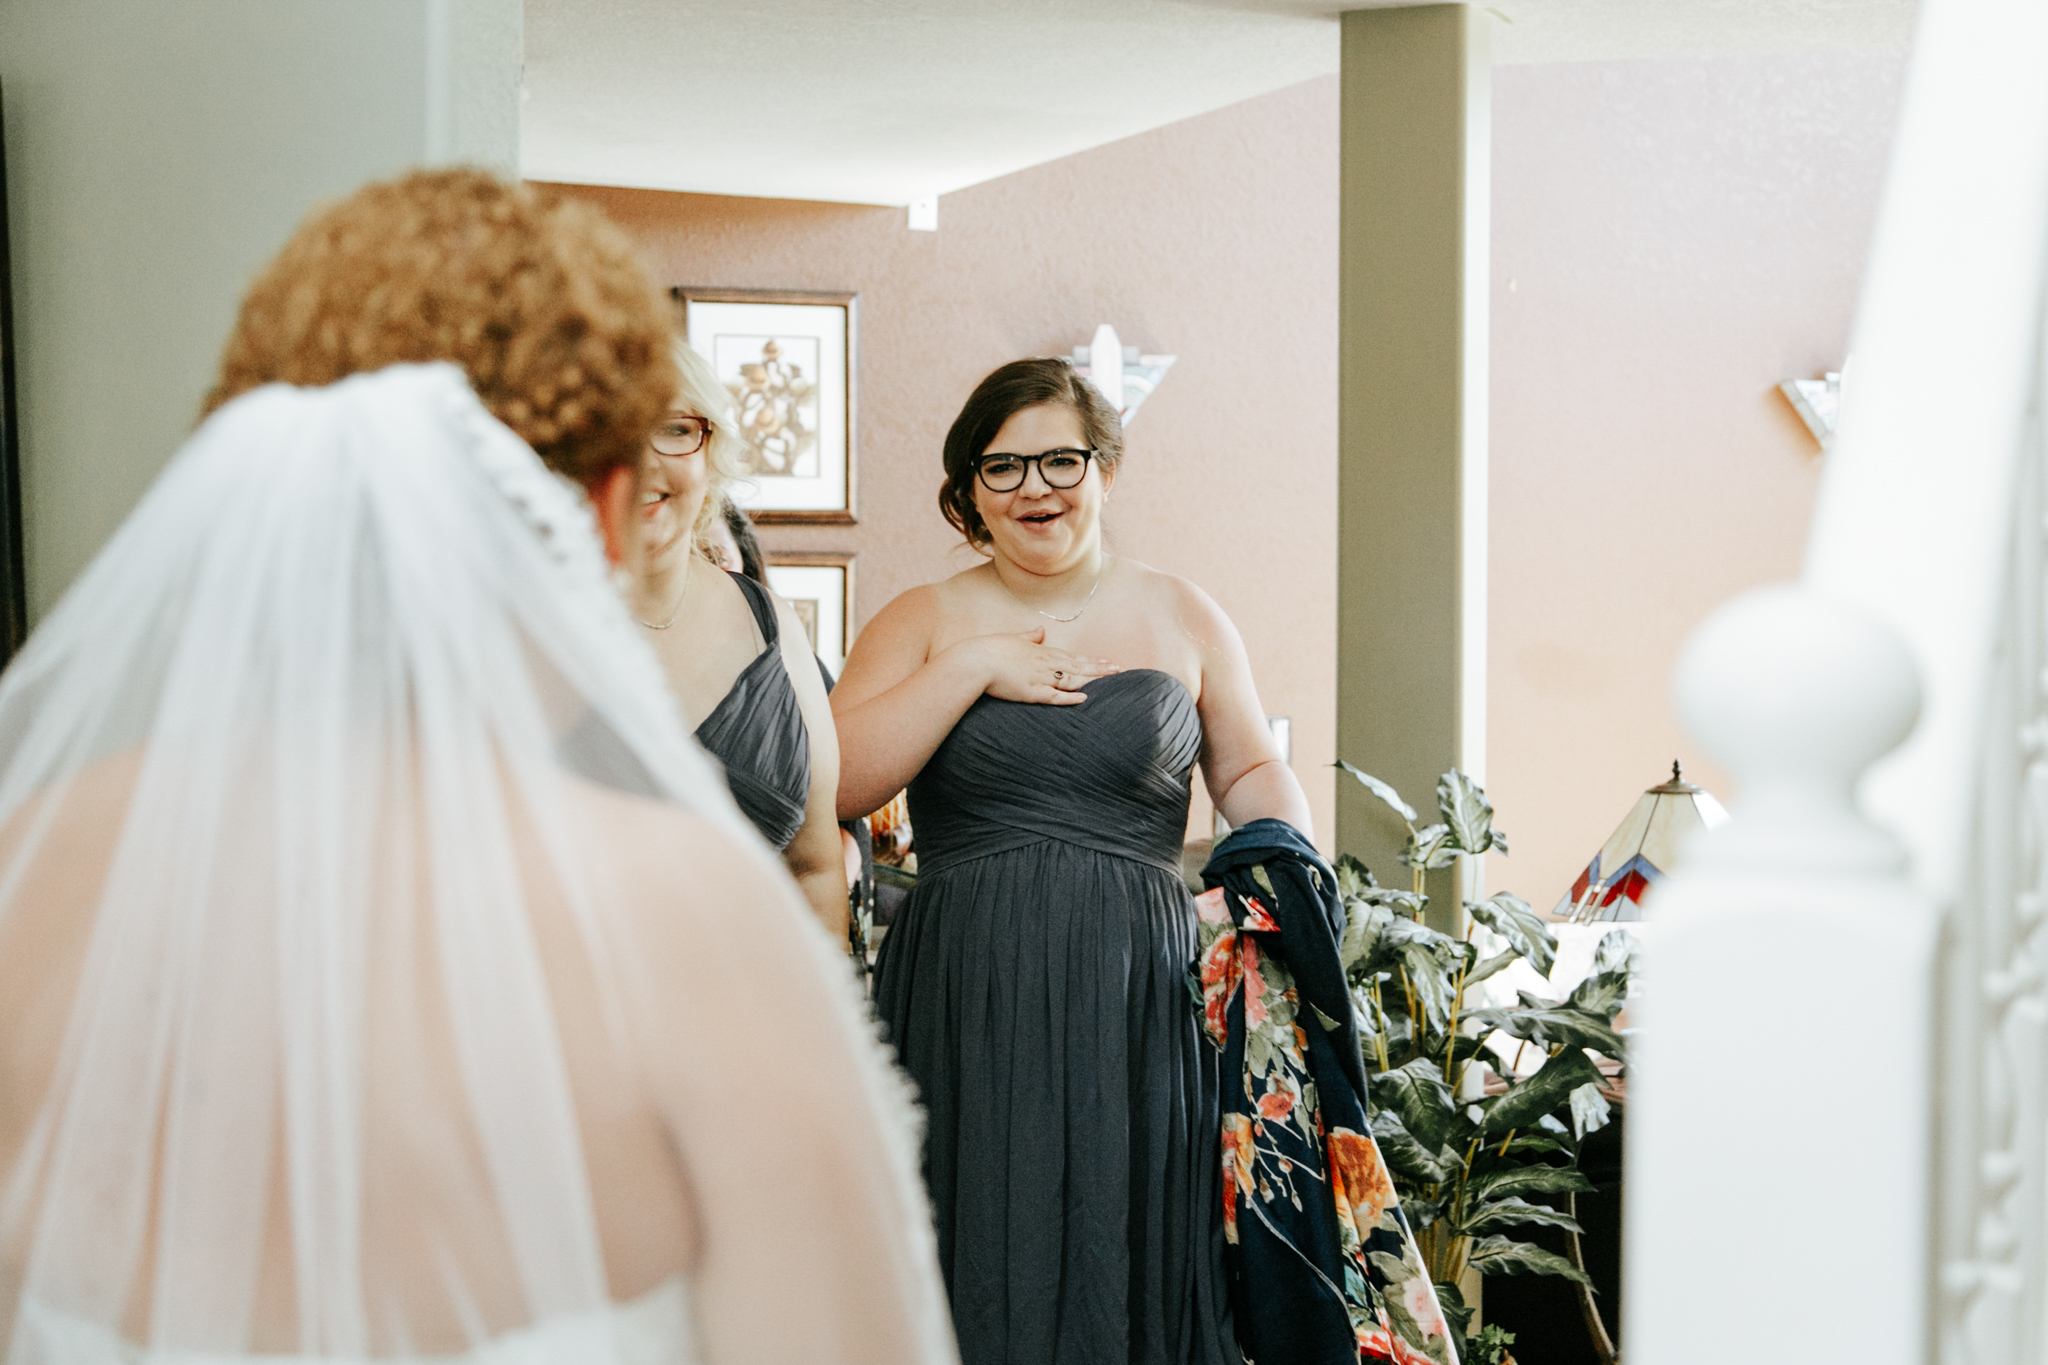 lethbridge-wedding-photographer-love-and-be-loved-photography-trent-danielle-galt-reception-picture-image-photo-5.jpg